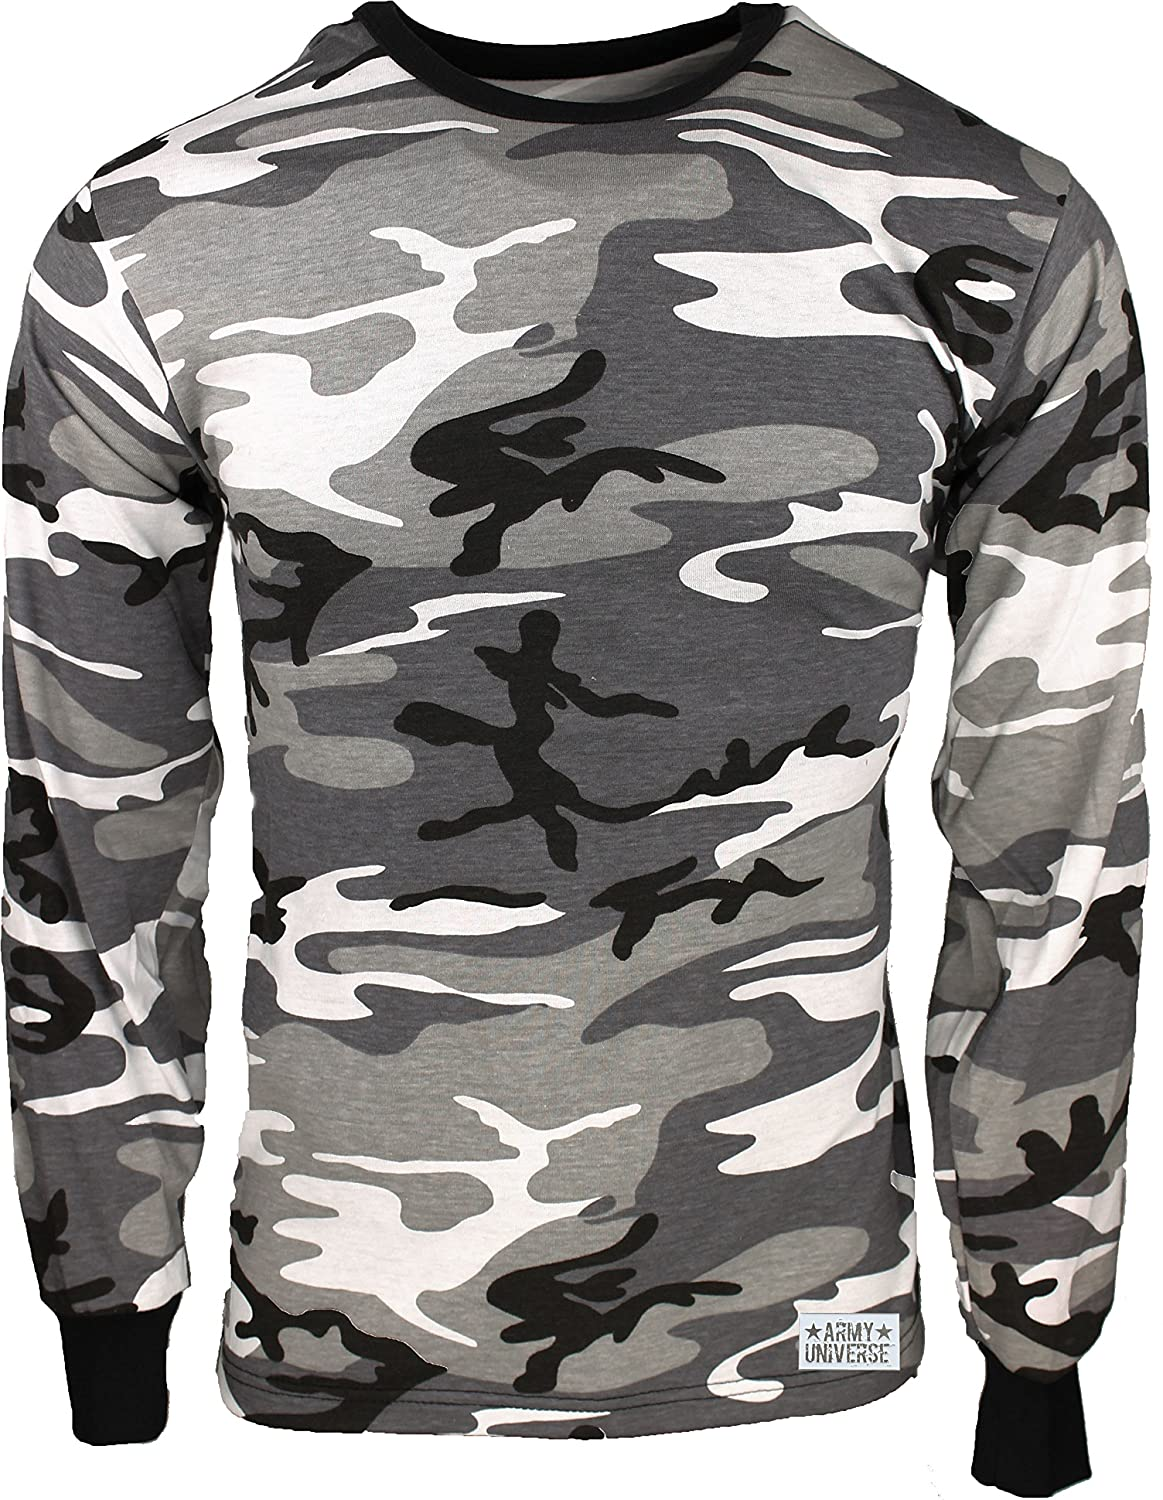 Amazon.com  Military Camouflage Long Sleeve T-Shirt Camo Army Tee With  ArmyUniverse Pin  Clothing d58049fc1f9